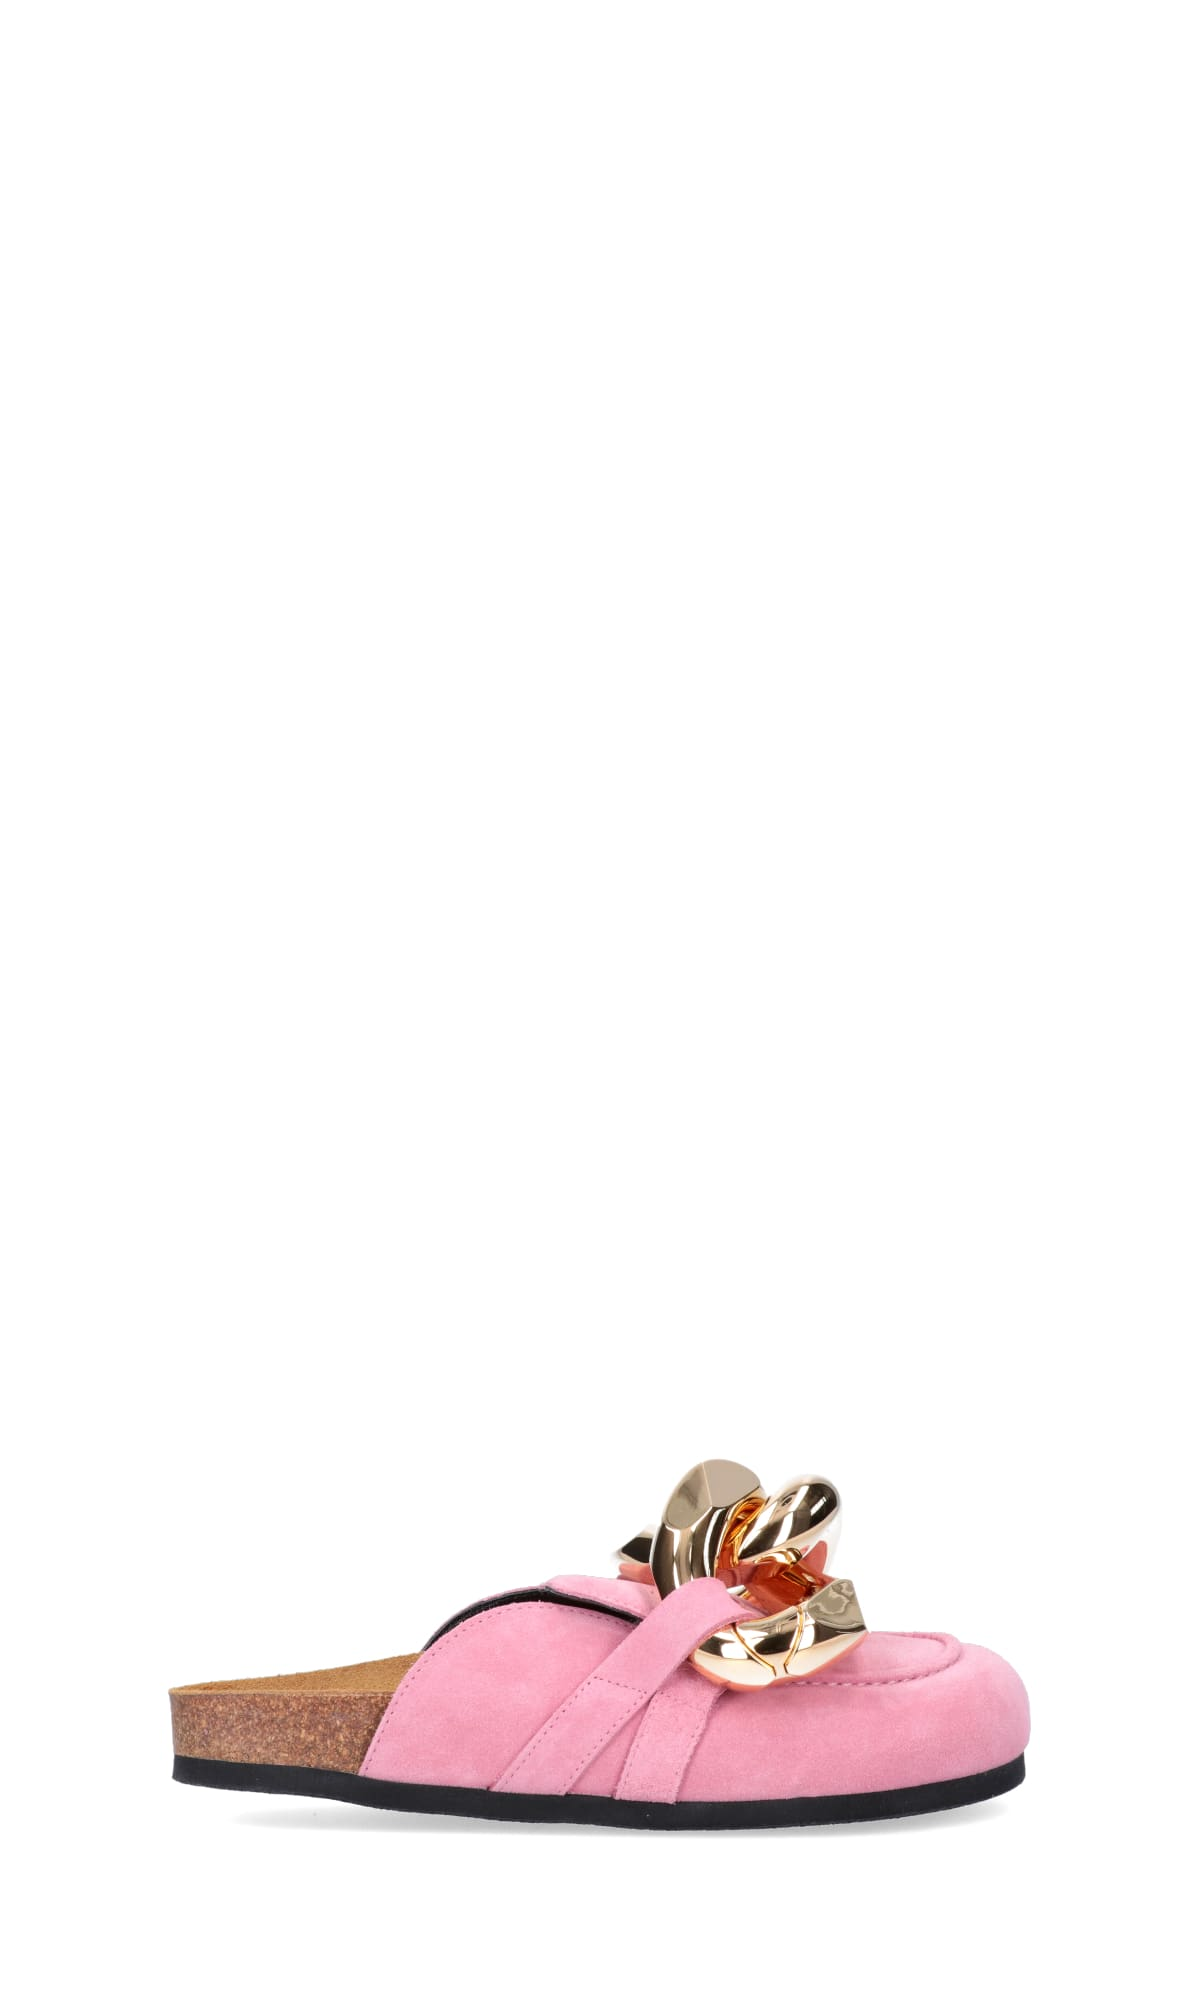 Jw Anderson Suedes FLAT SHOES